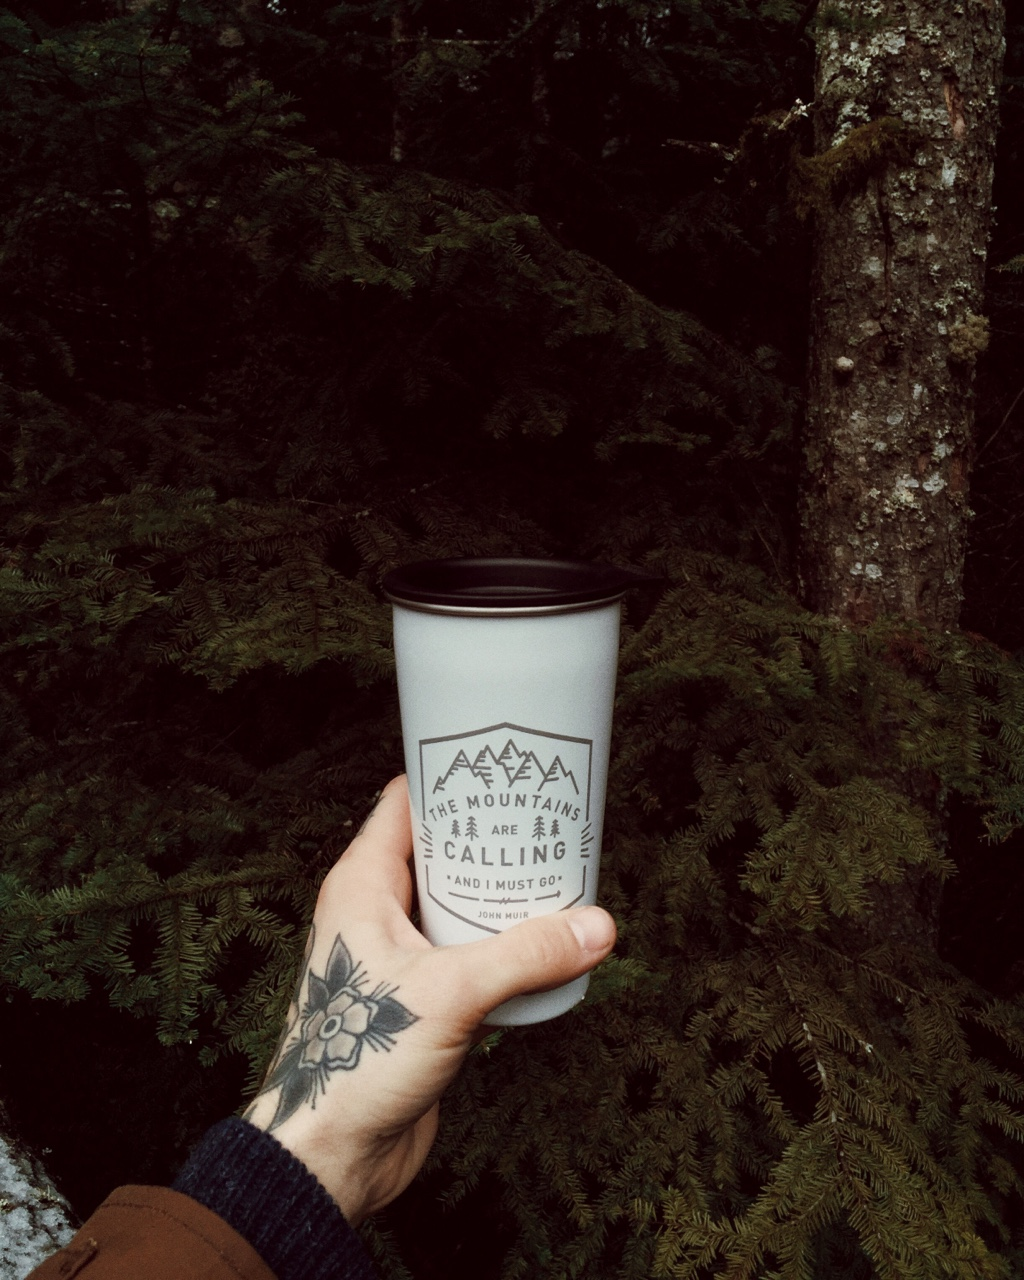 Can't wait for the new @MiiR retail store to open up! The store will be equal parts an artisan coffee shop, a place to pick up a beer on tap, and a place to check out the latest MiiR goodies, like this rad tumbler.